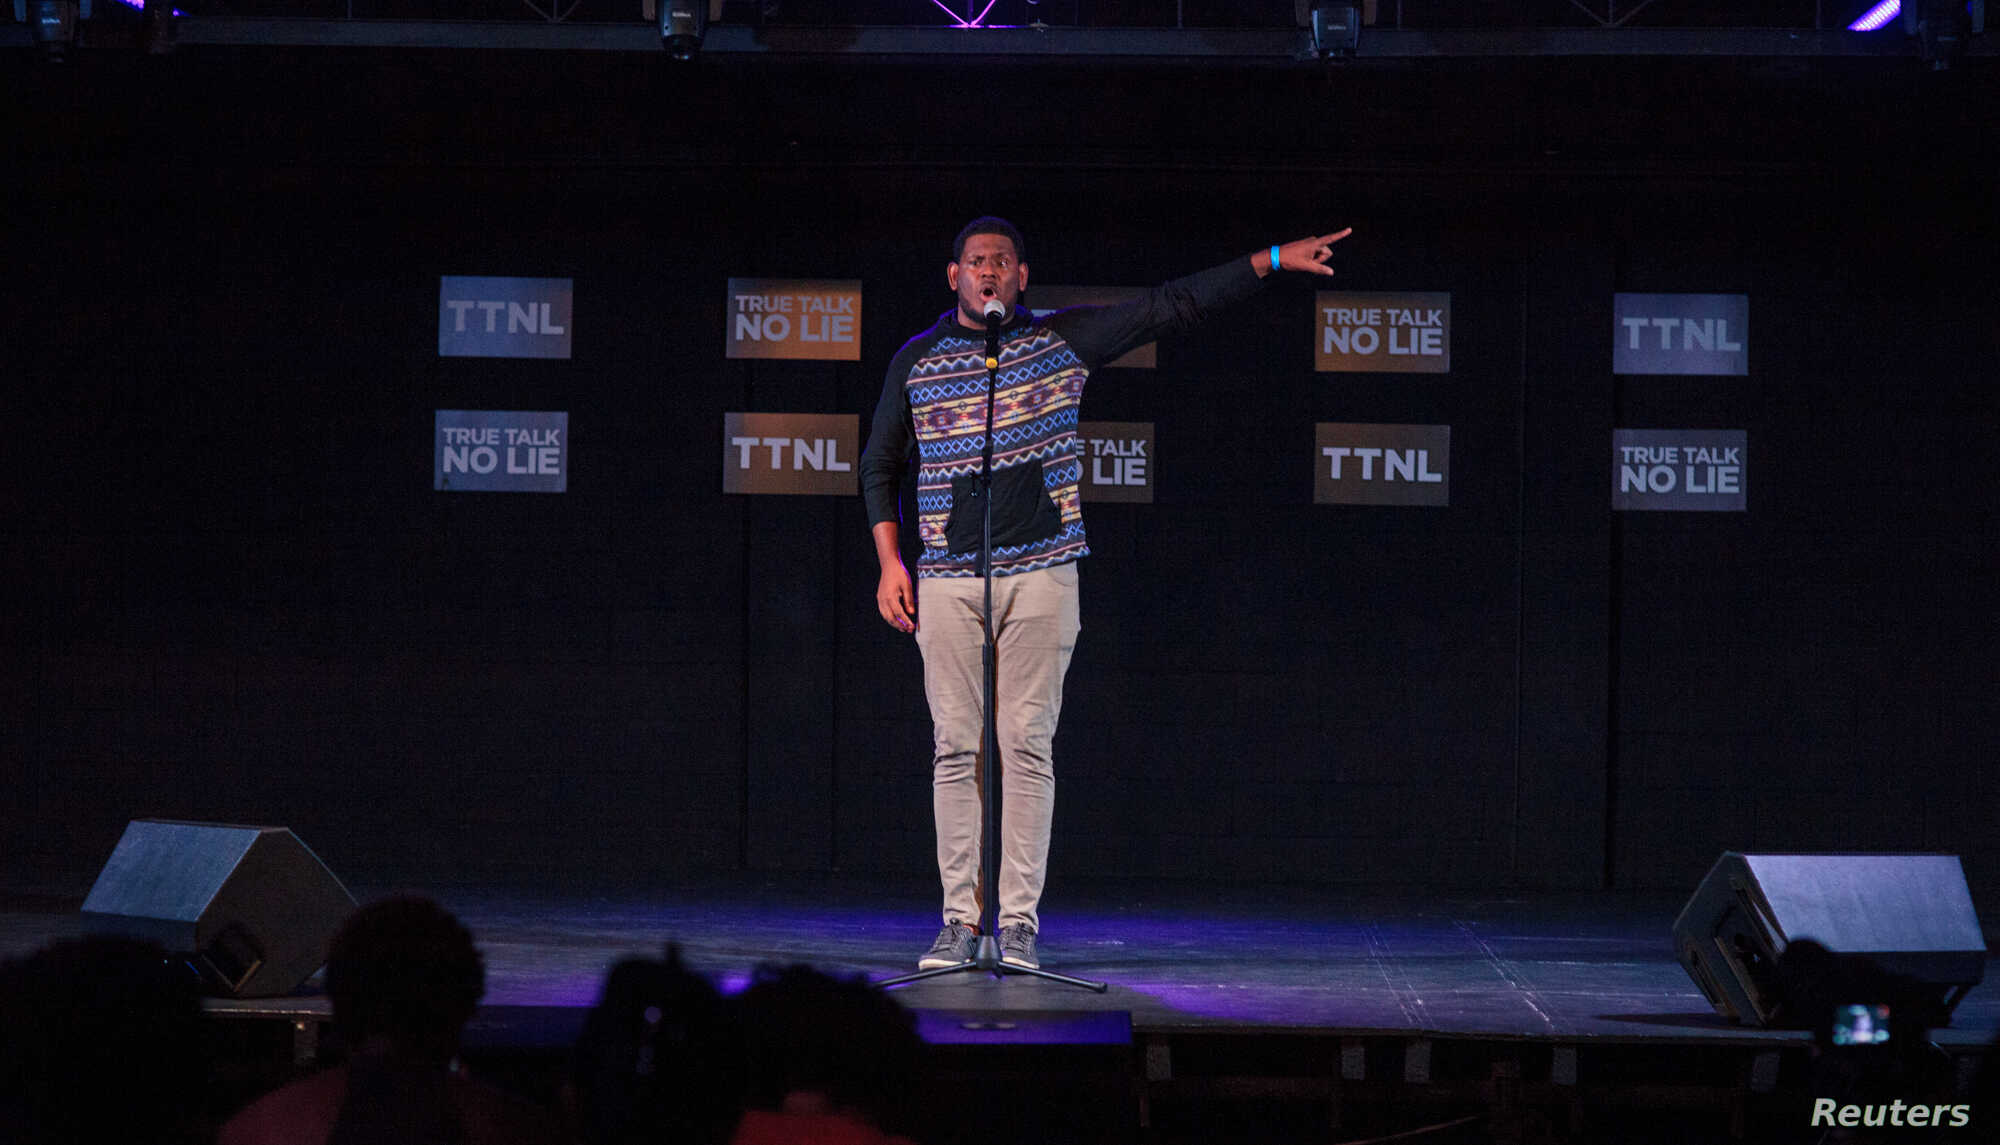 """Kyle Hernandez recites a poem during """"True Talk No Lie"""", a monthly spoken word event in Port of Spain, Trinidad and Tobago, May 23, 2018."""